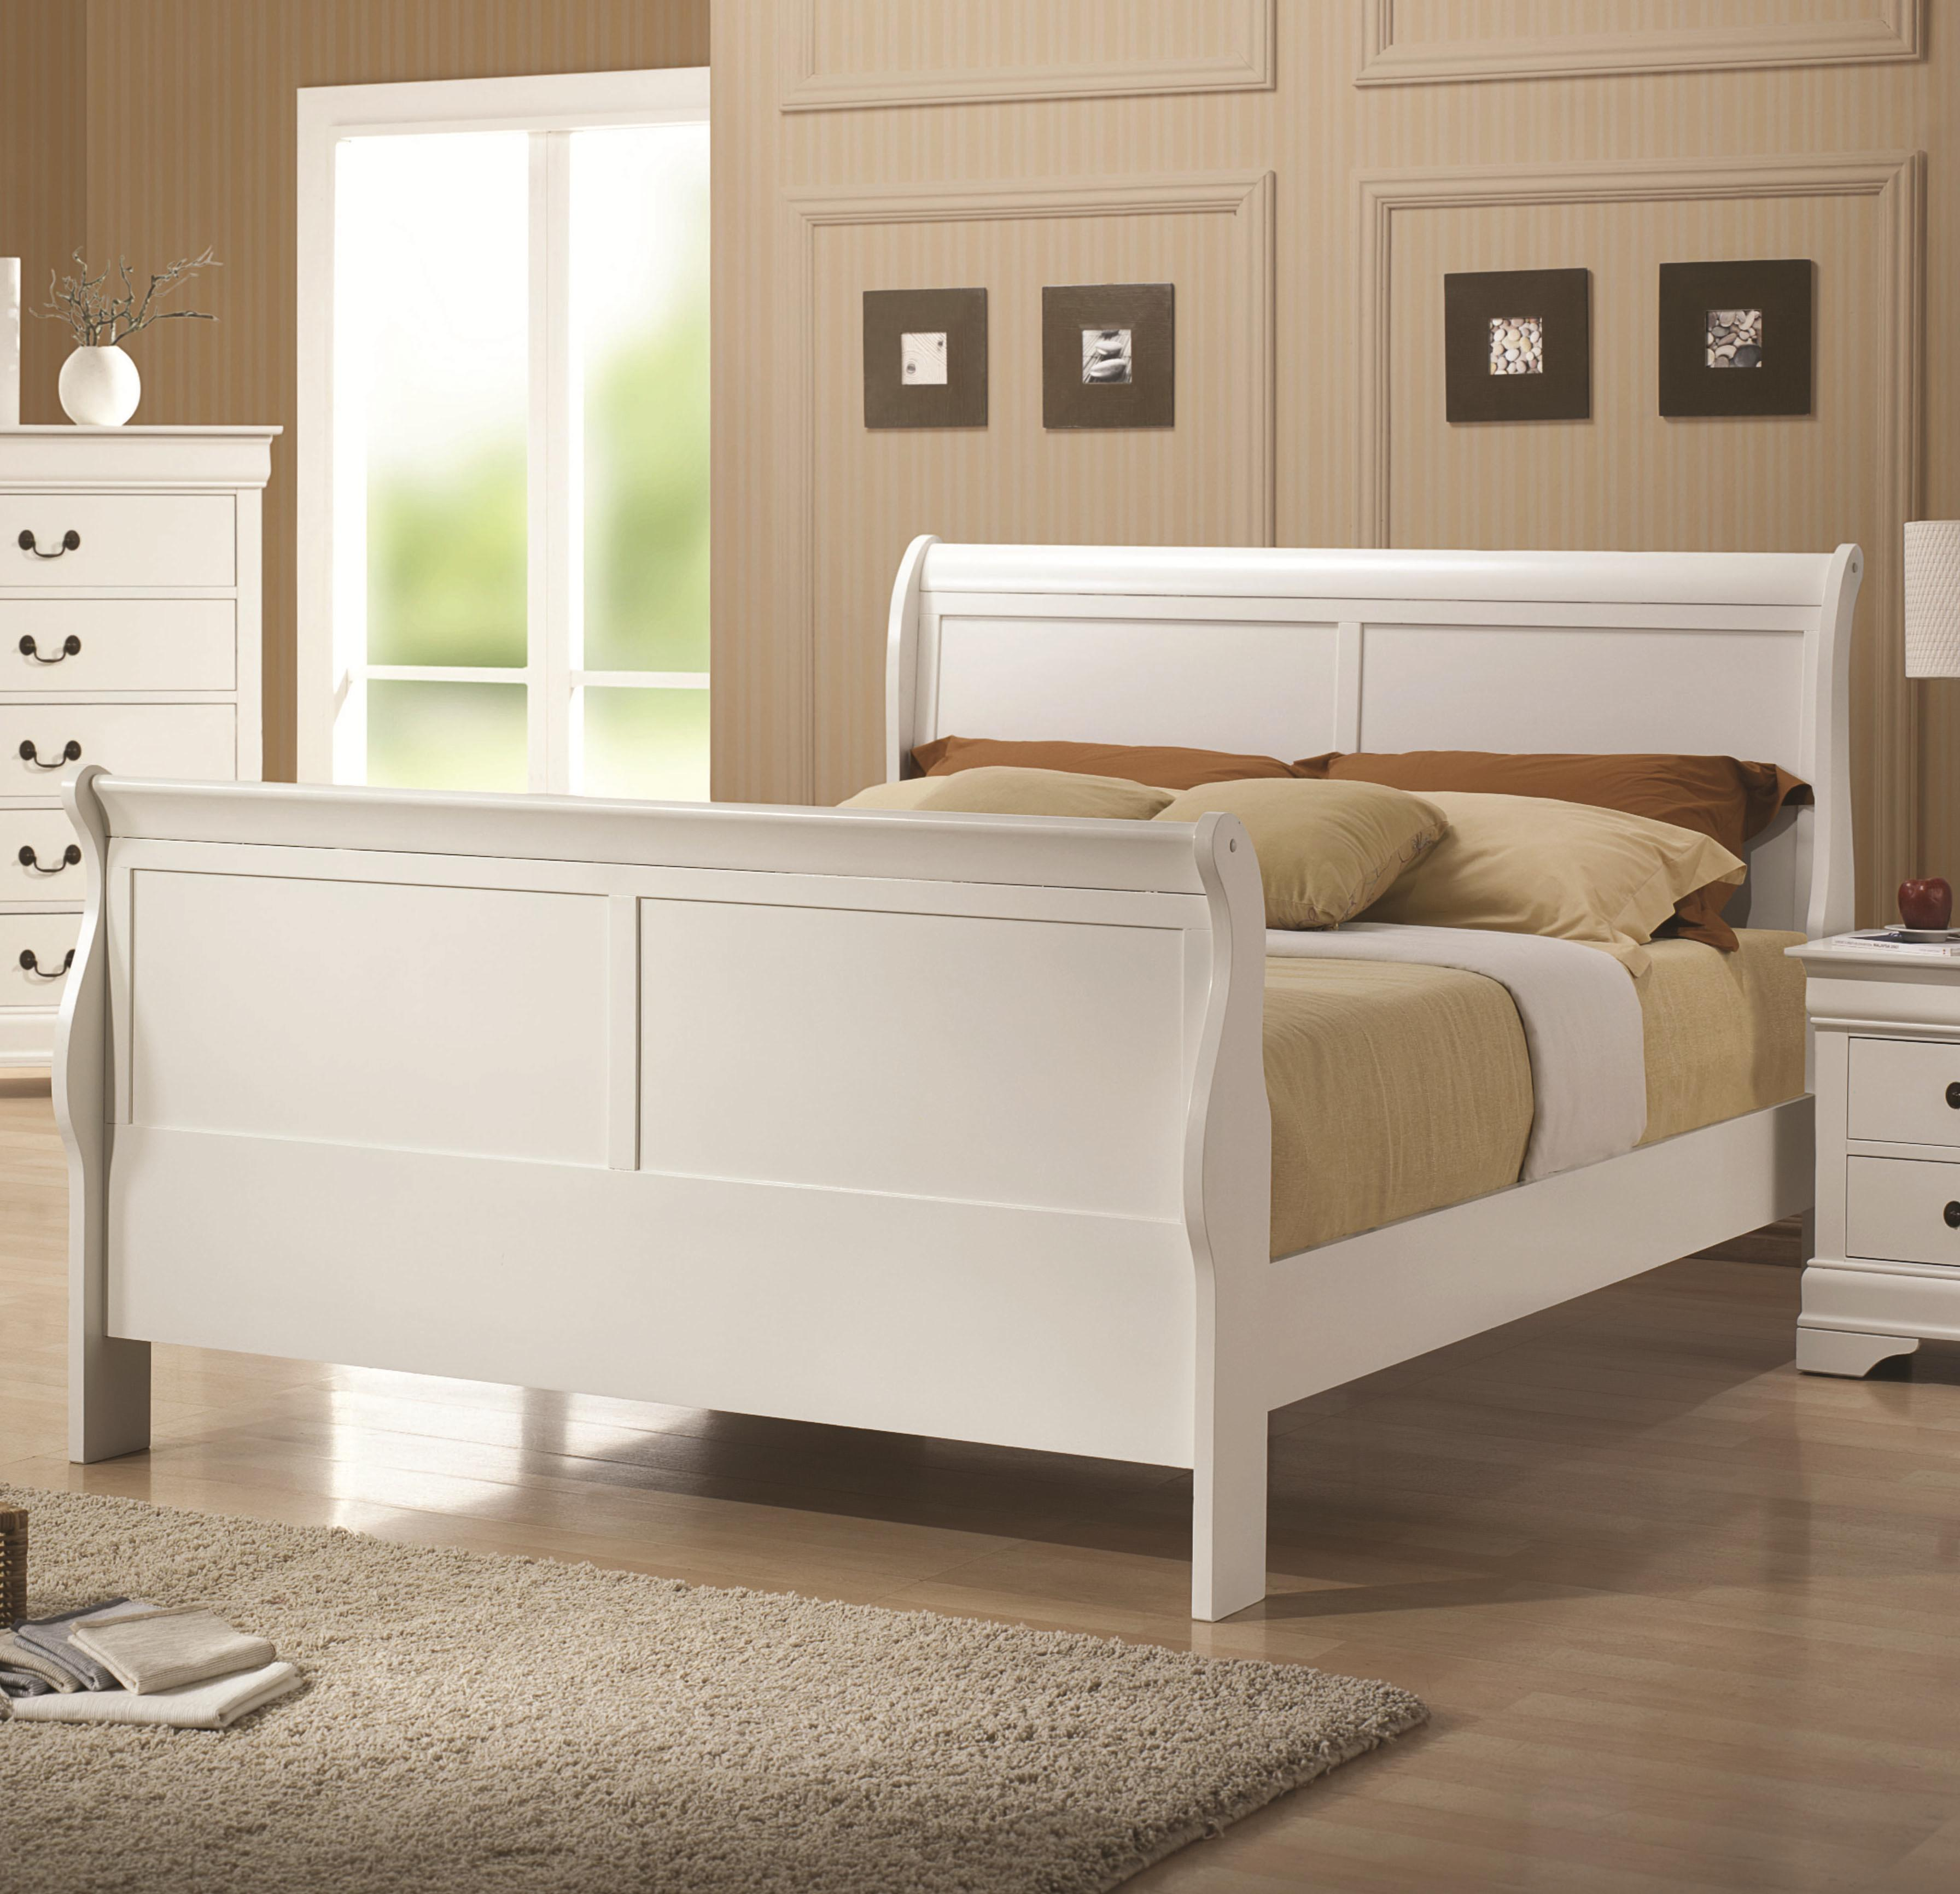 Coaster Louis Philippe 204 White Finish Twin Sleigh Style Bed Value City Furniture Sleigh Beds